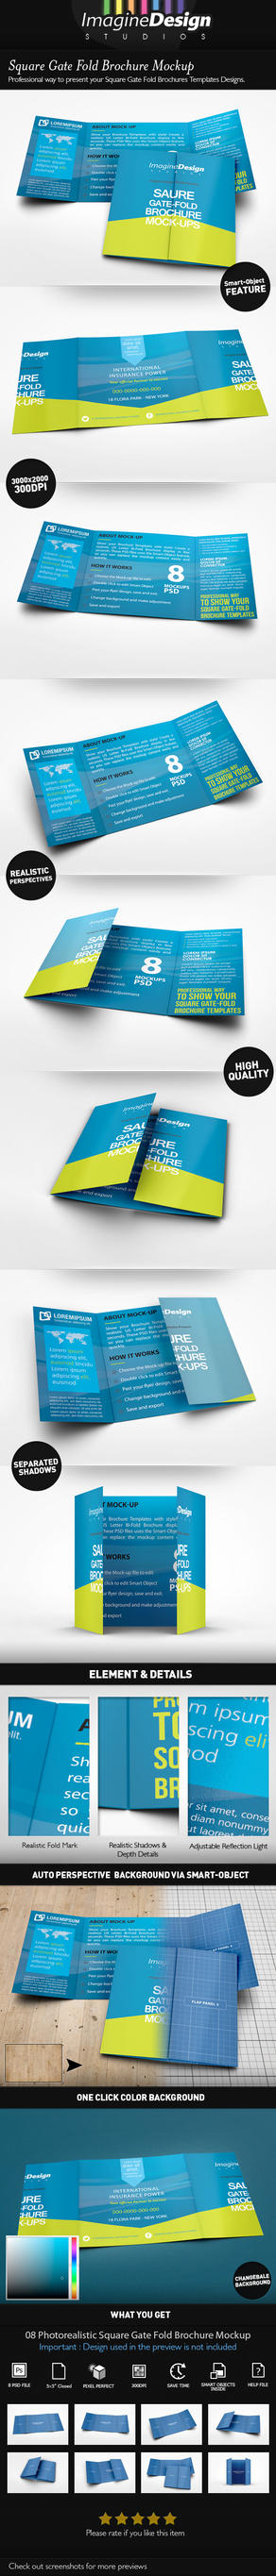 Idesignstudio 2 0 Square Gate Fold Brochure Mockup By Idesignstudio